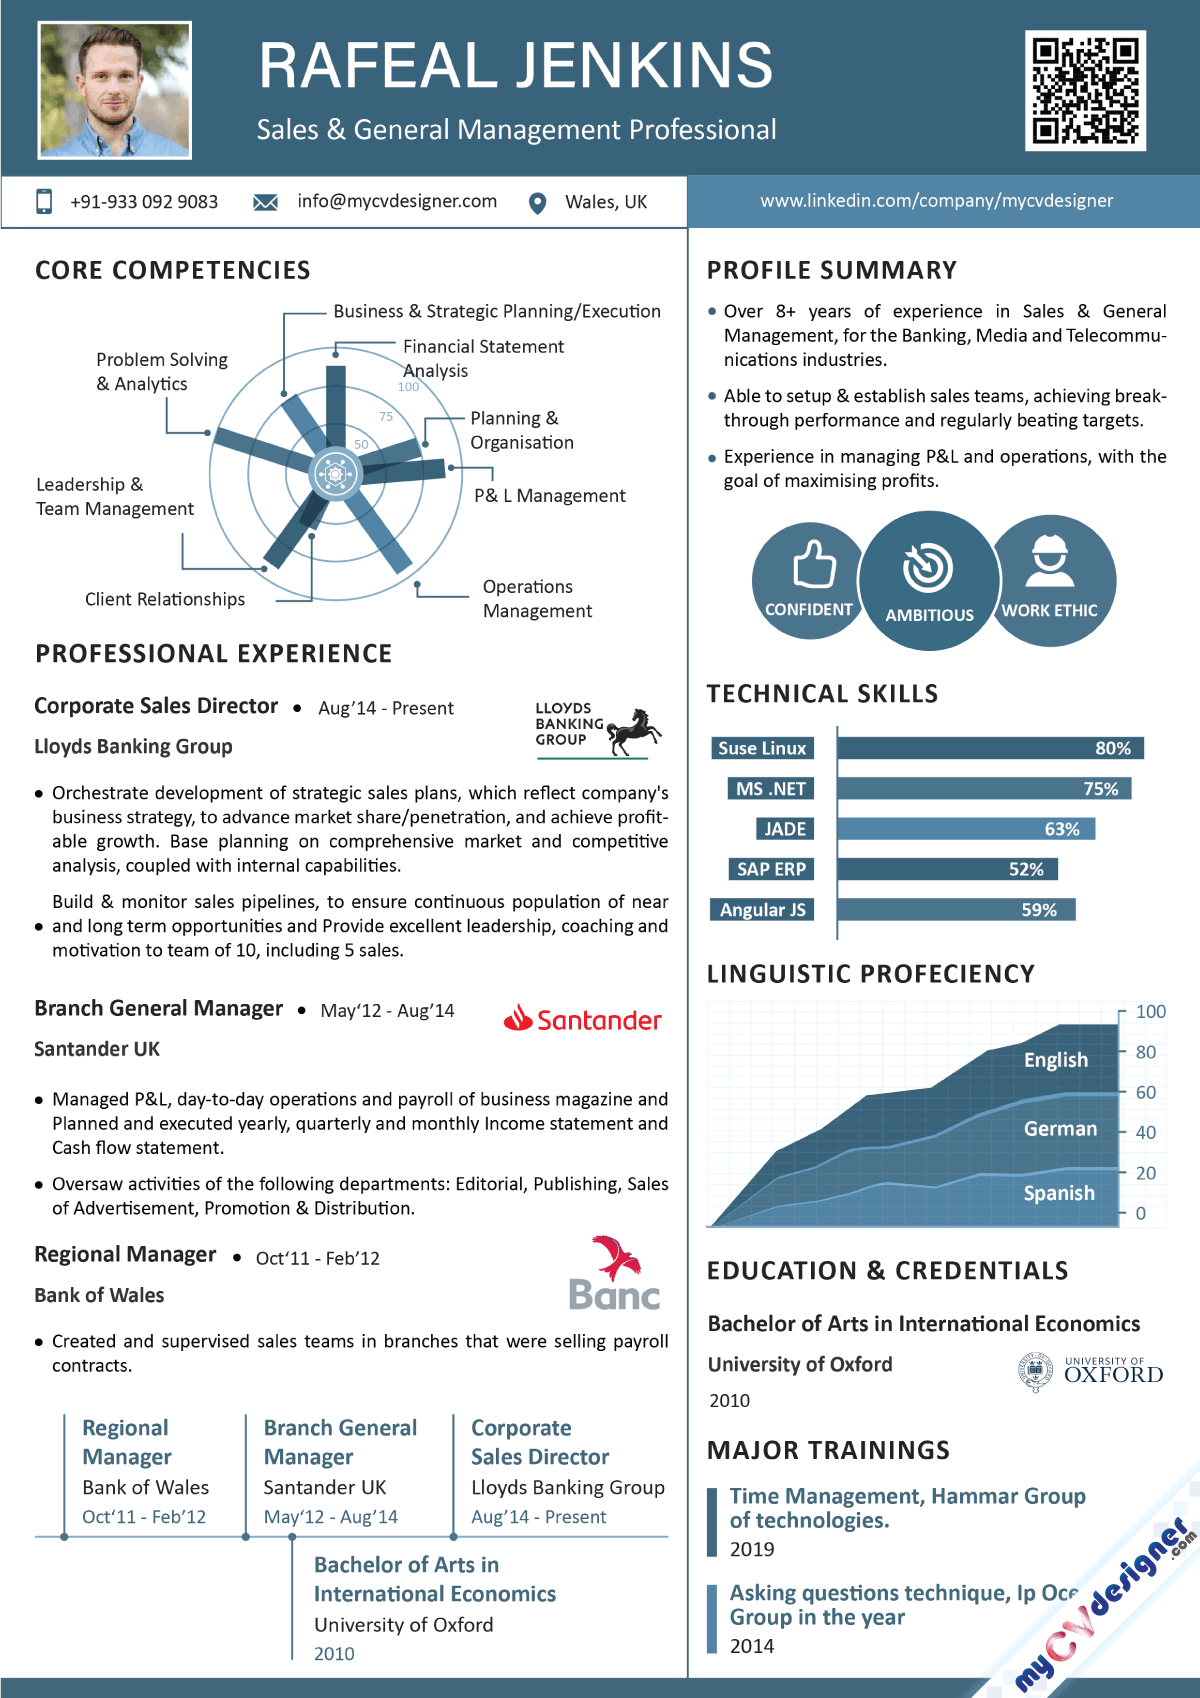 Sales and General Management Professional Infographic Resume Template